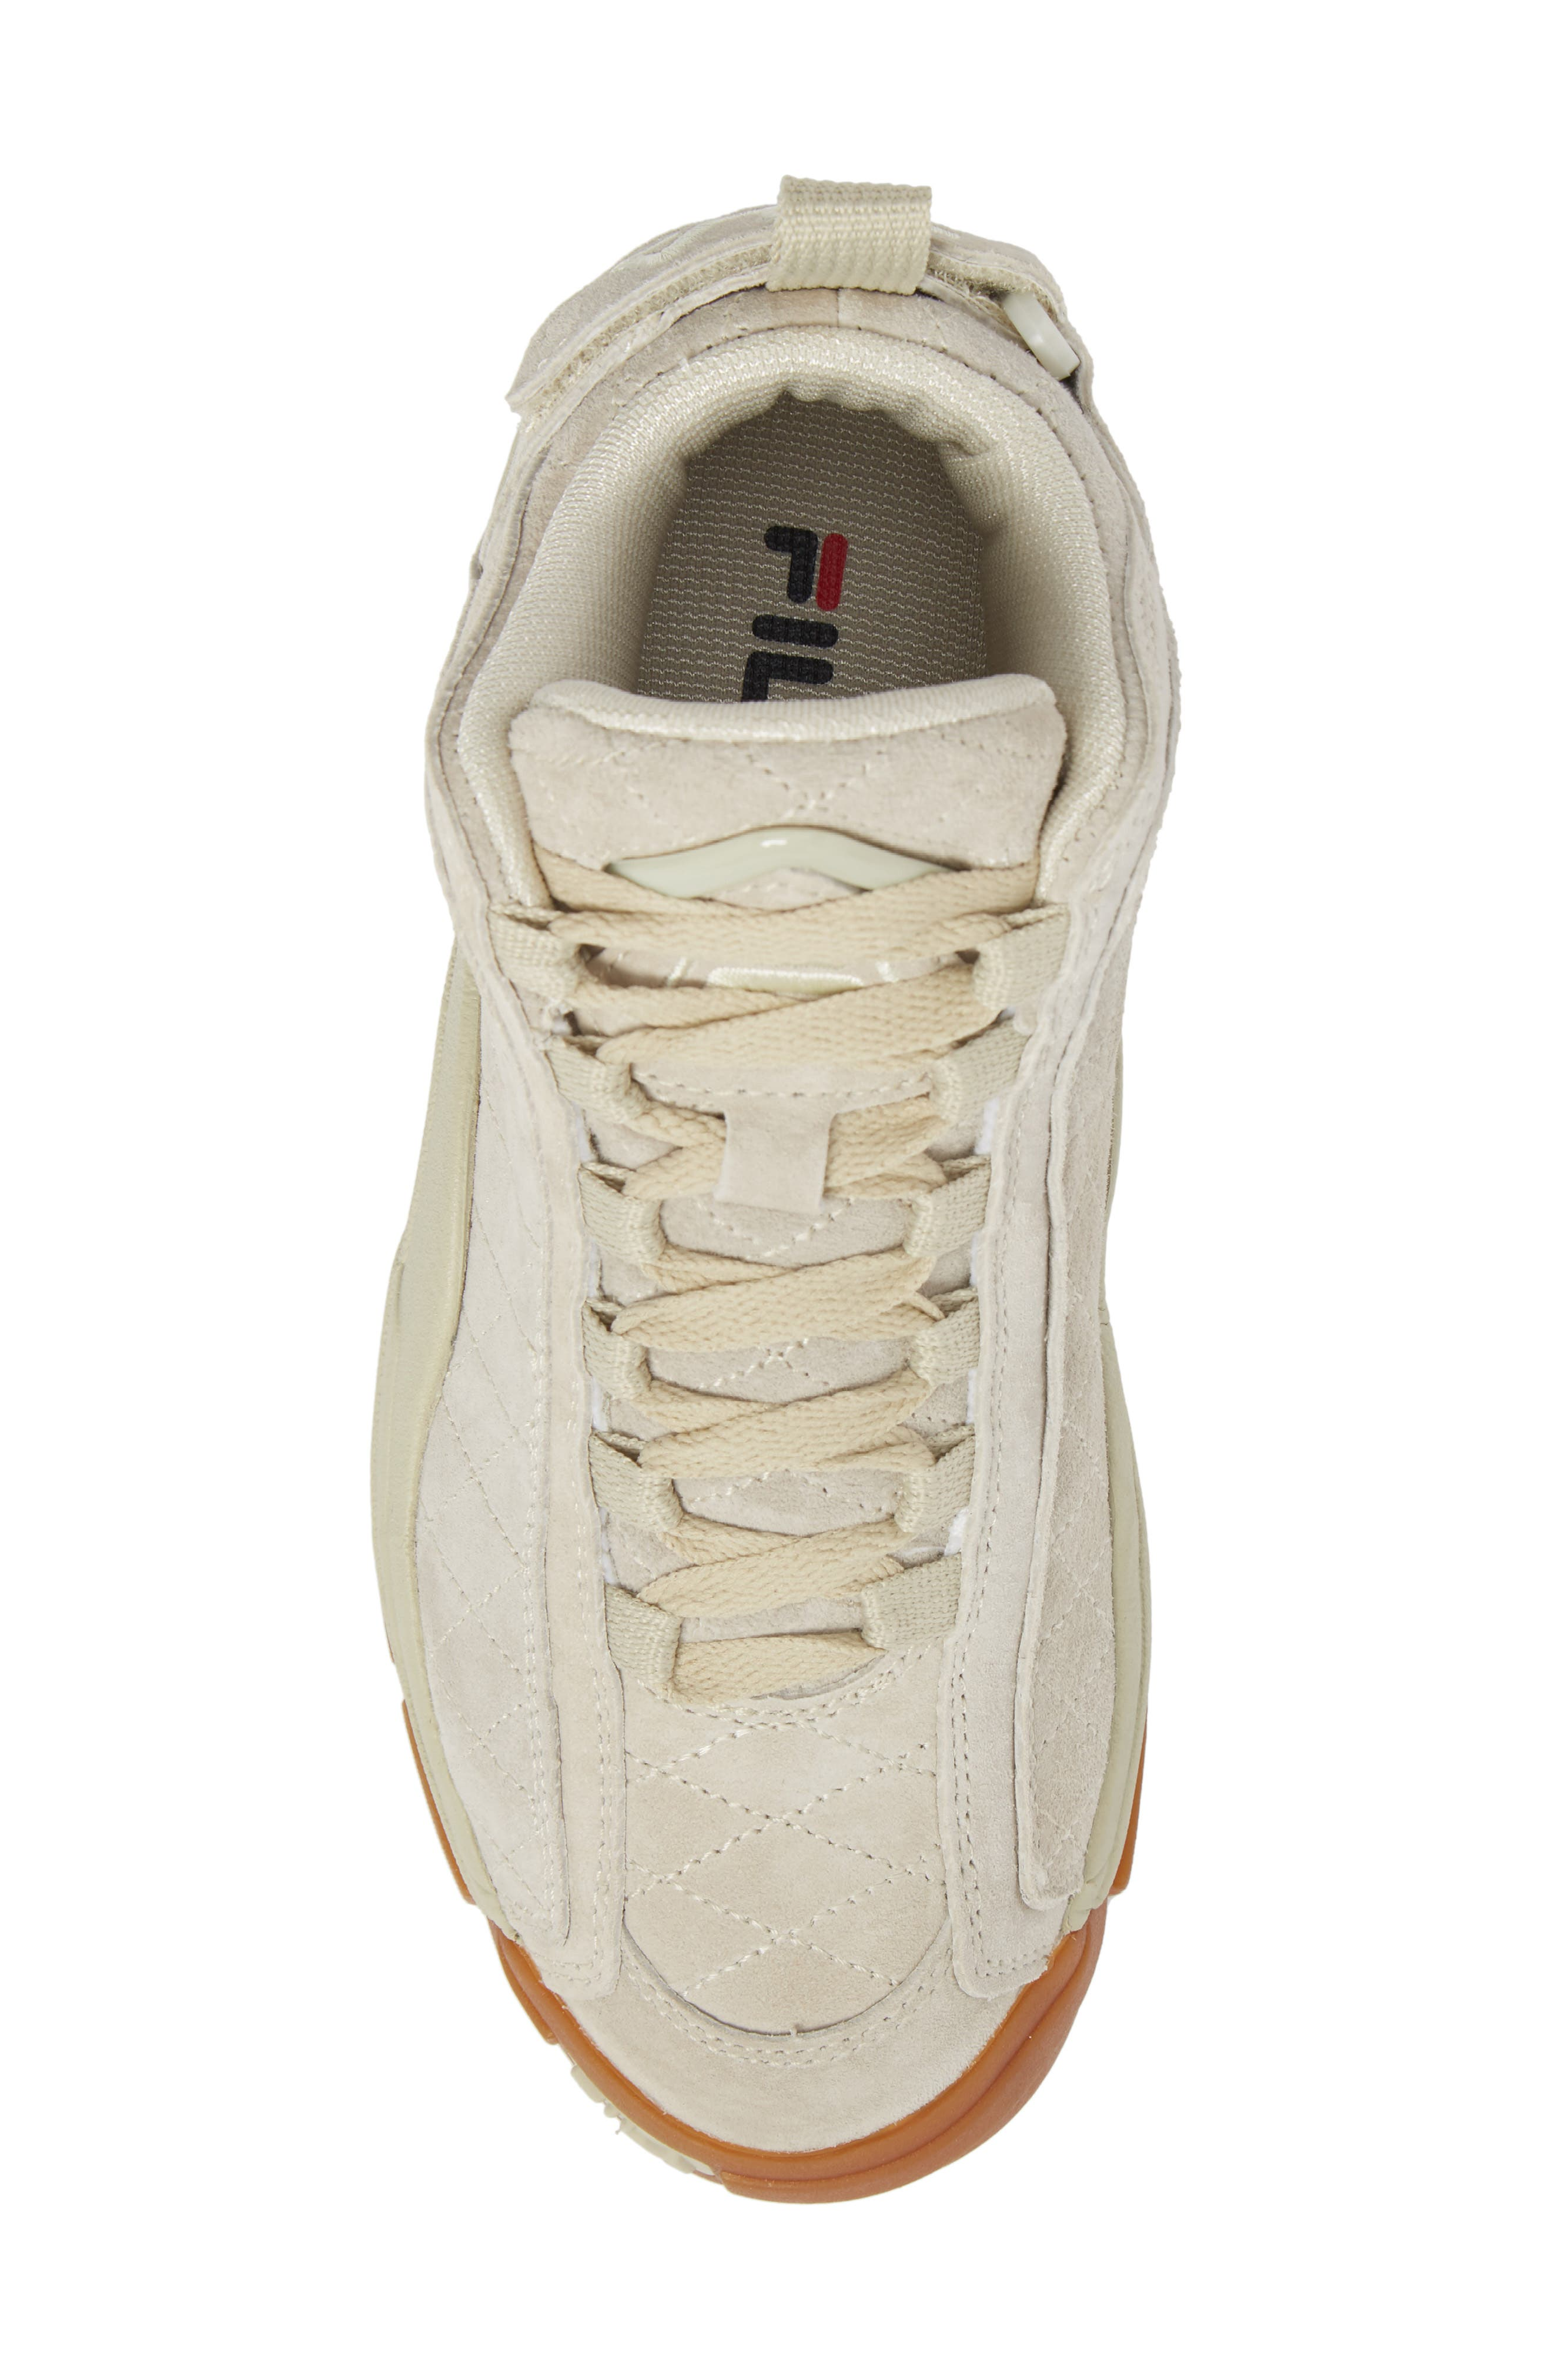 96 Quilted Mid-Top Sneaker,                             Alternate thumbnail 5, color,                             Cream/ Gum